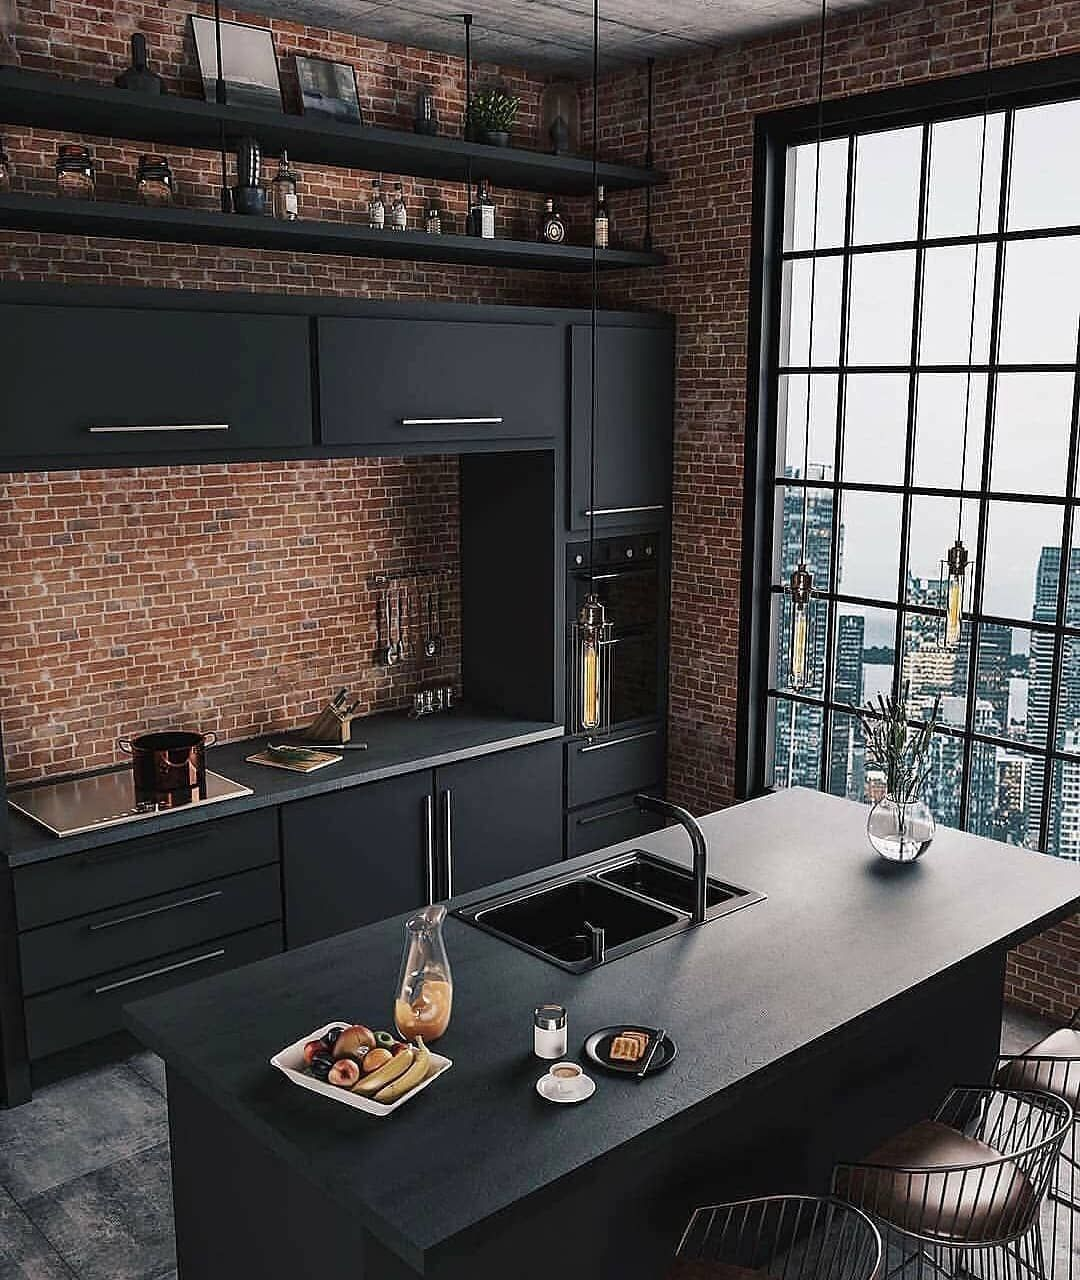 Dizajn V Stile Loft Design Loft Design Kitchen By Carolinekincheski Ocenite Etot Dizajn Ot Top Kitchen Trends Home Interior Design Home Decor Trends